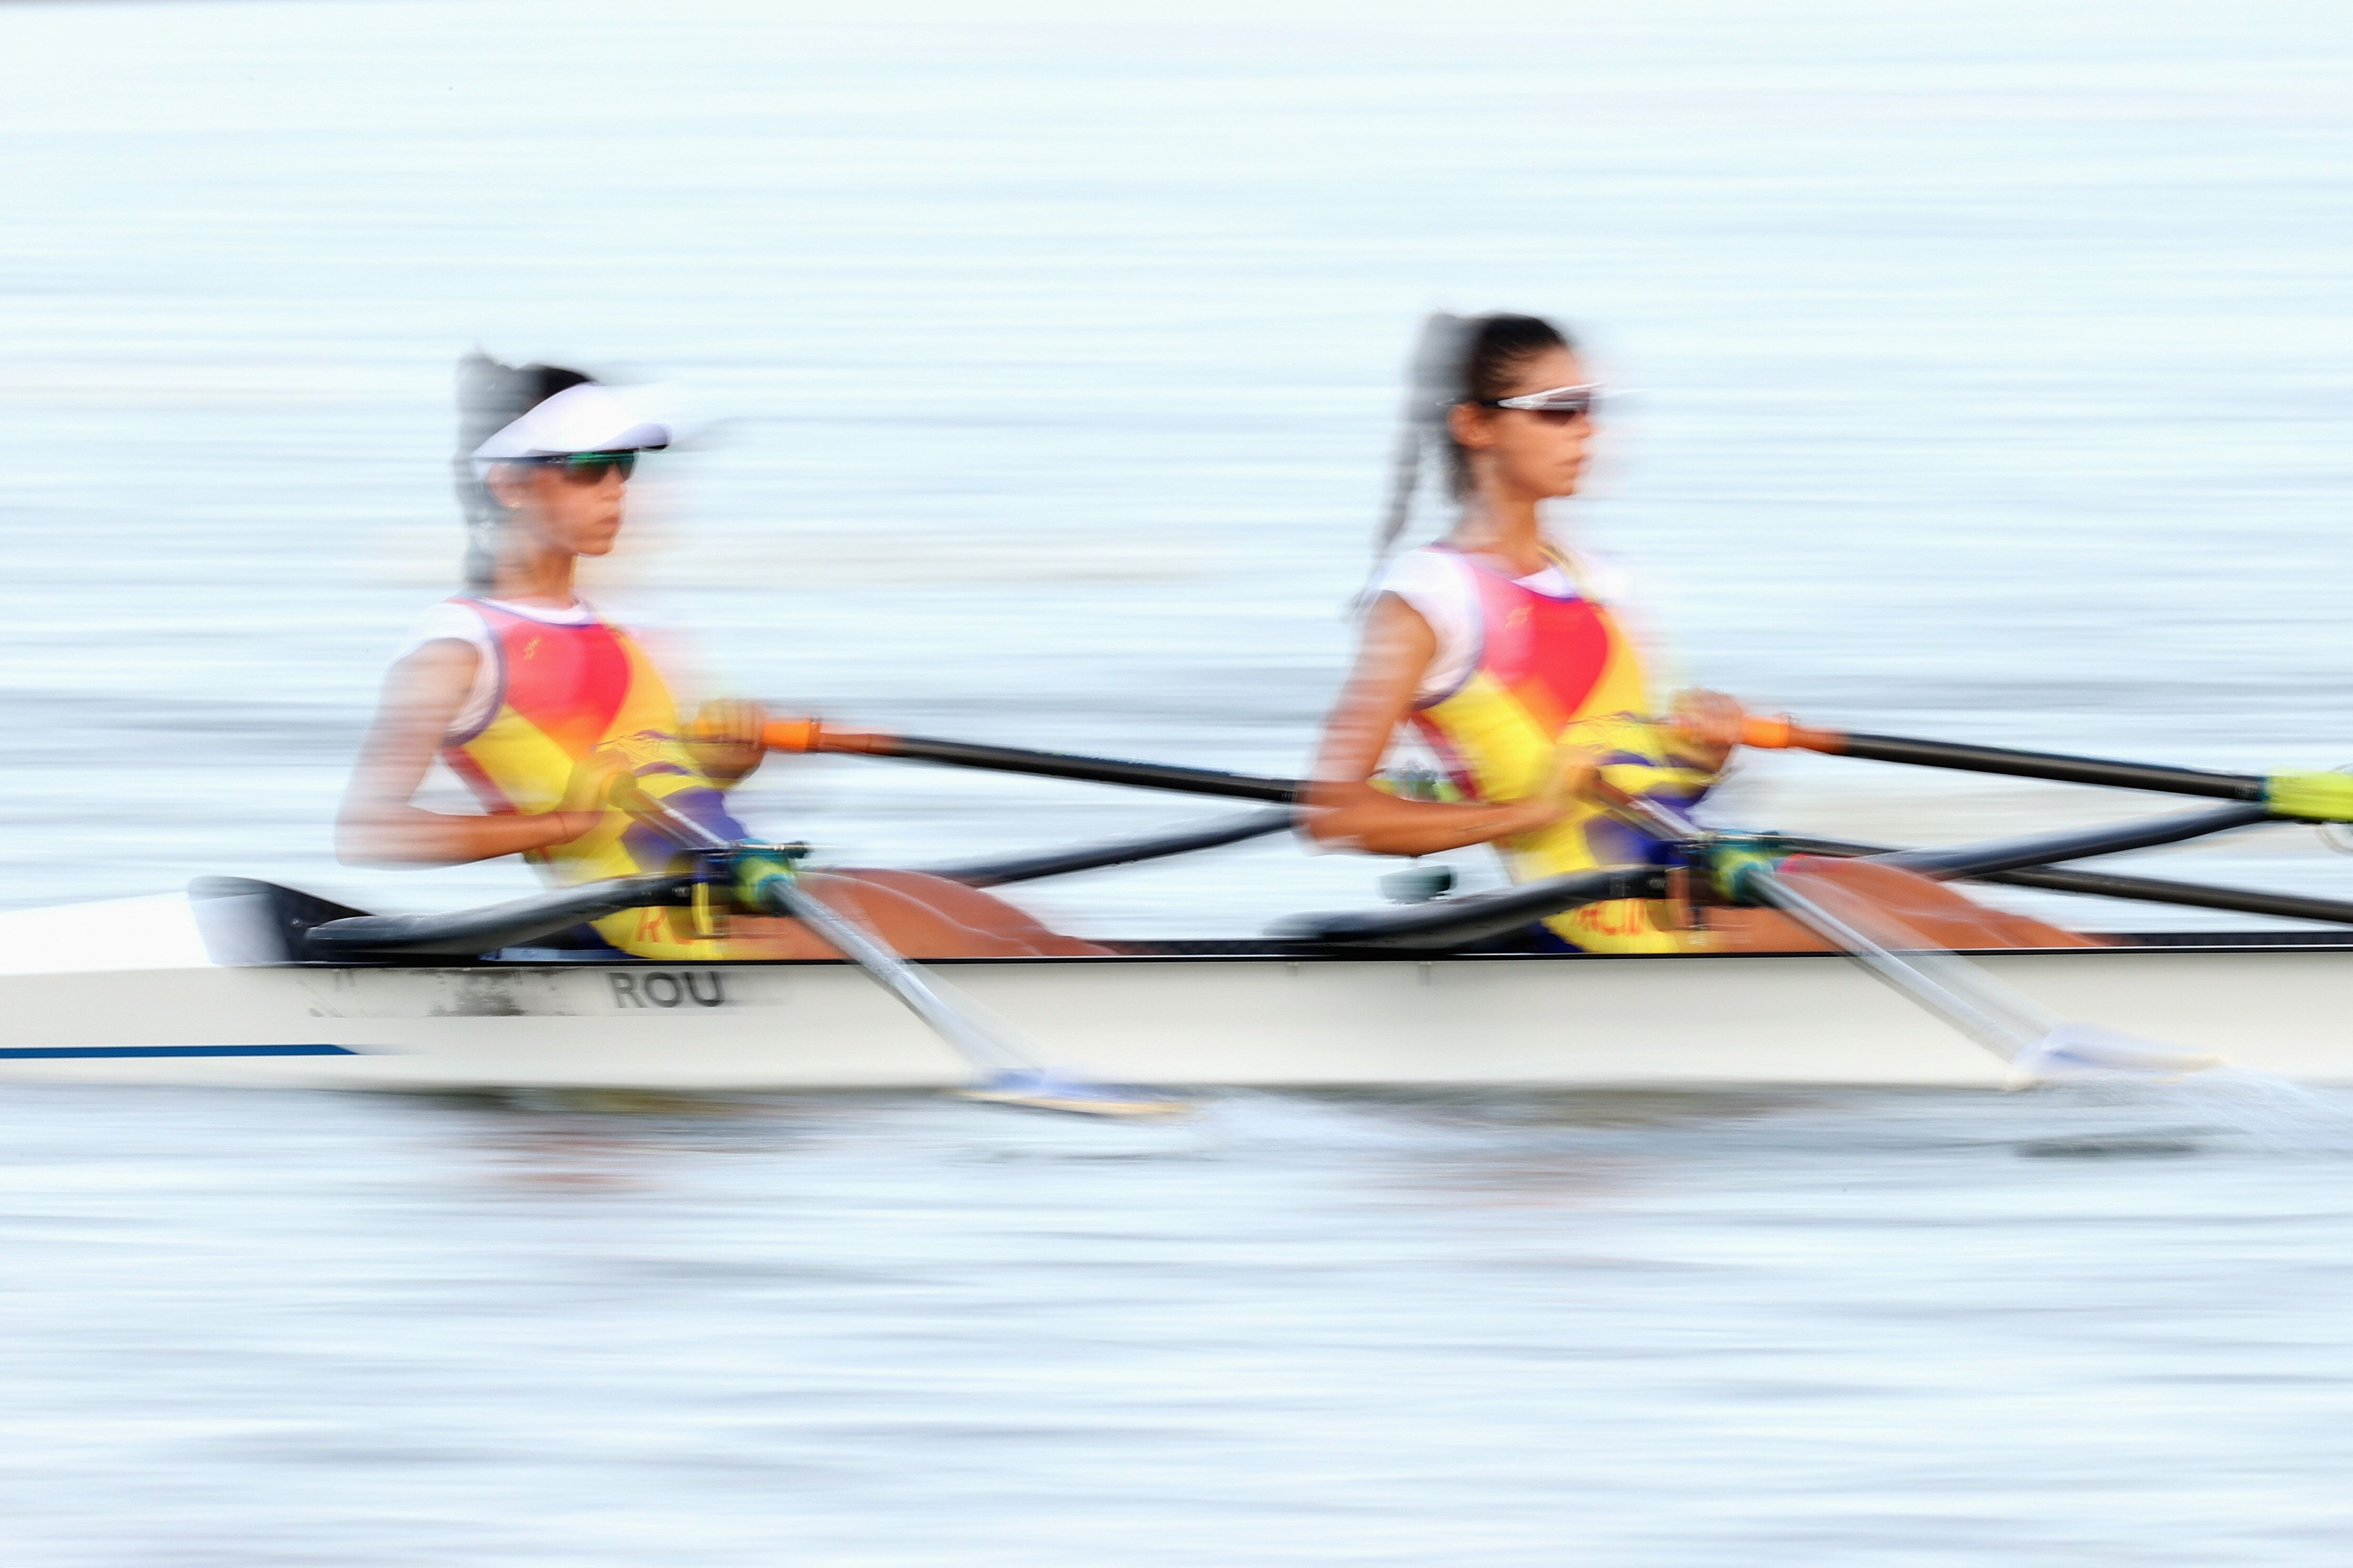 TOKYO, JAPAN - JULY 21: The Team Romania Women's double row during a training session at Sea Forest Waterway ahead of the Tok